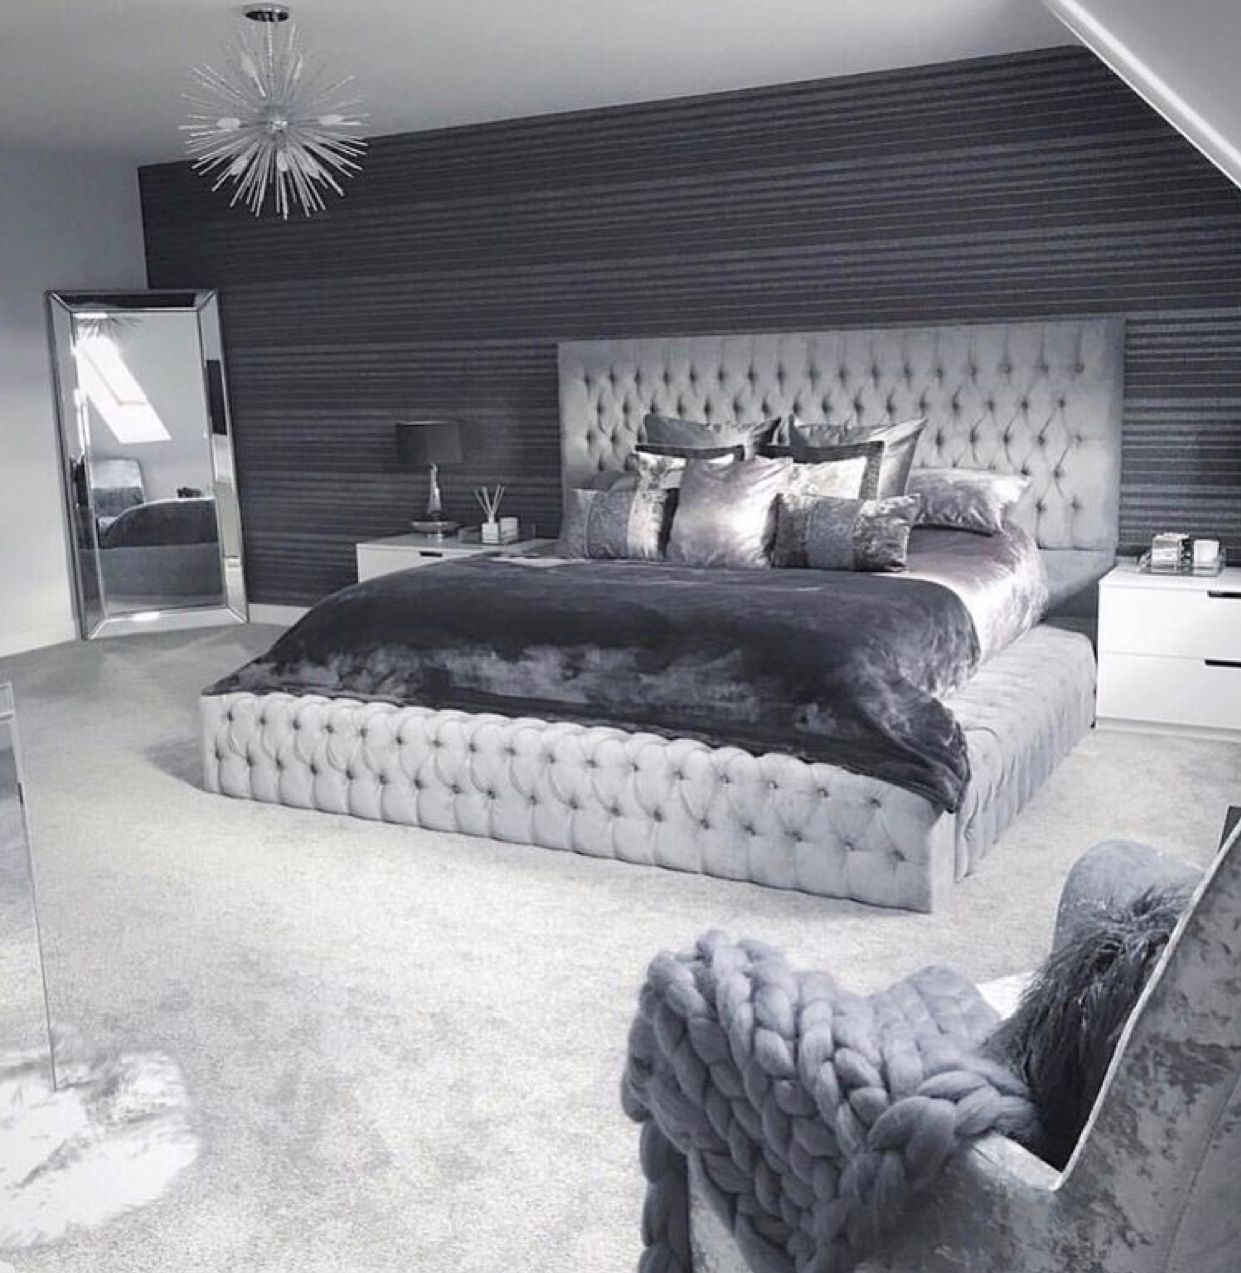 Pin By Lawonna On Designs In 2019 Bedroom Decor Room